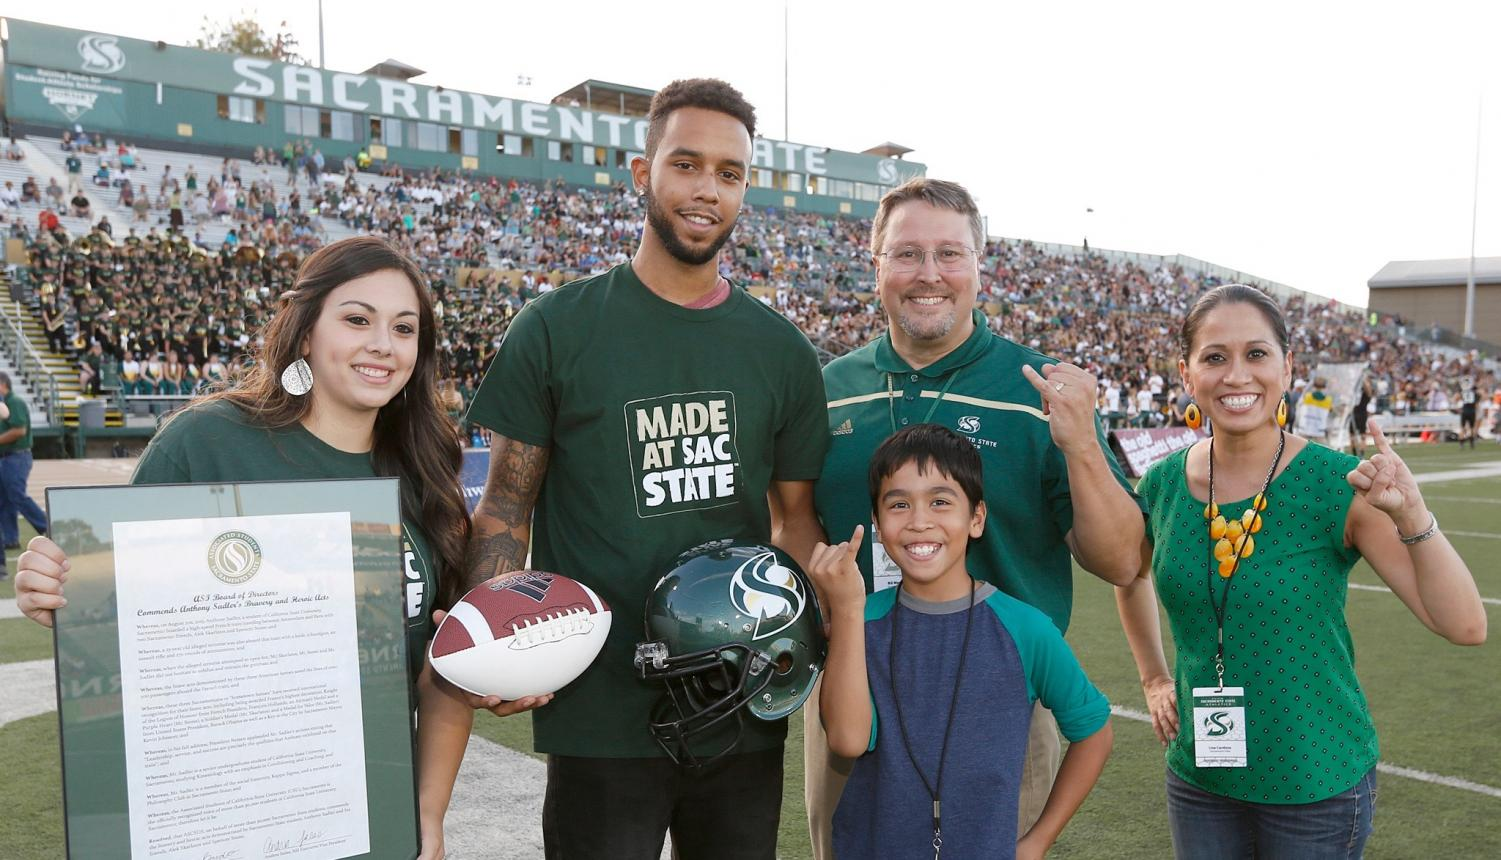 Anthony Sadler poses at Hornet Stadium on Sept. 26, 2015. After Sadler and two friends helped stop a terrorist on a train from Amsterdam to Paris, the three men play themselves in a film directed by Clint Eastwood.